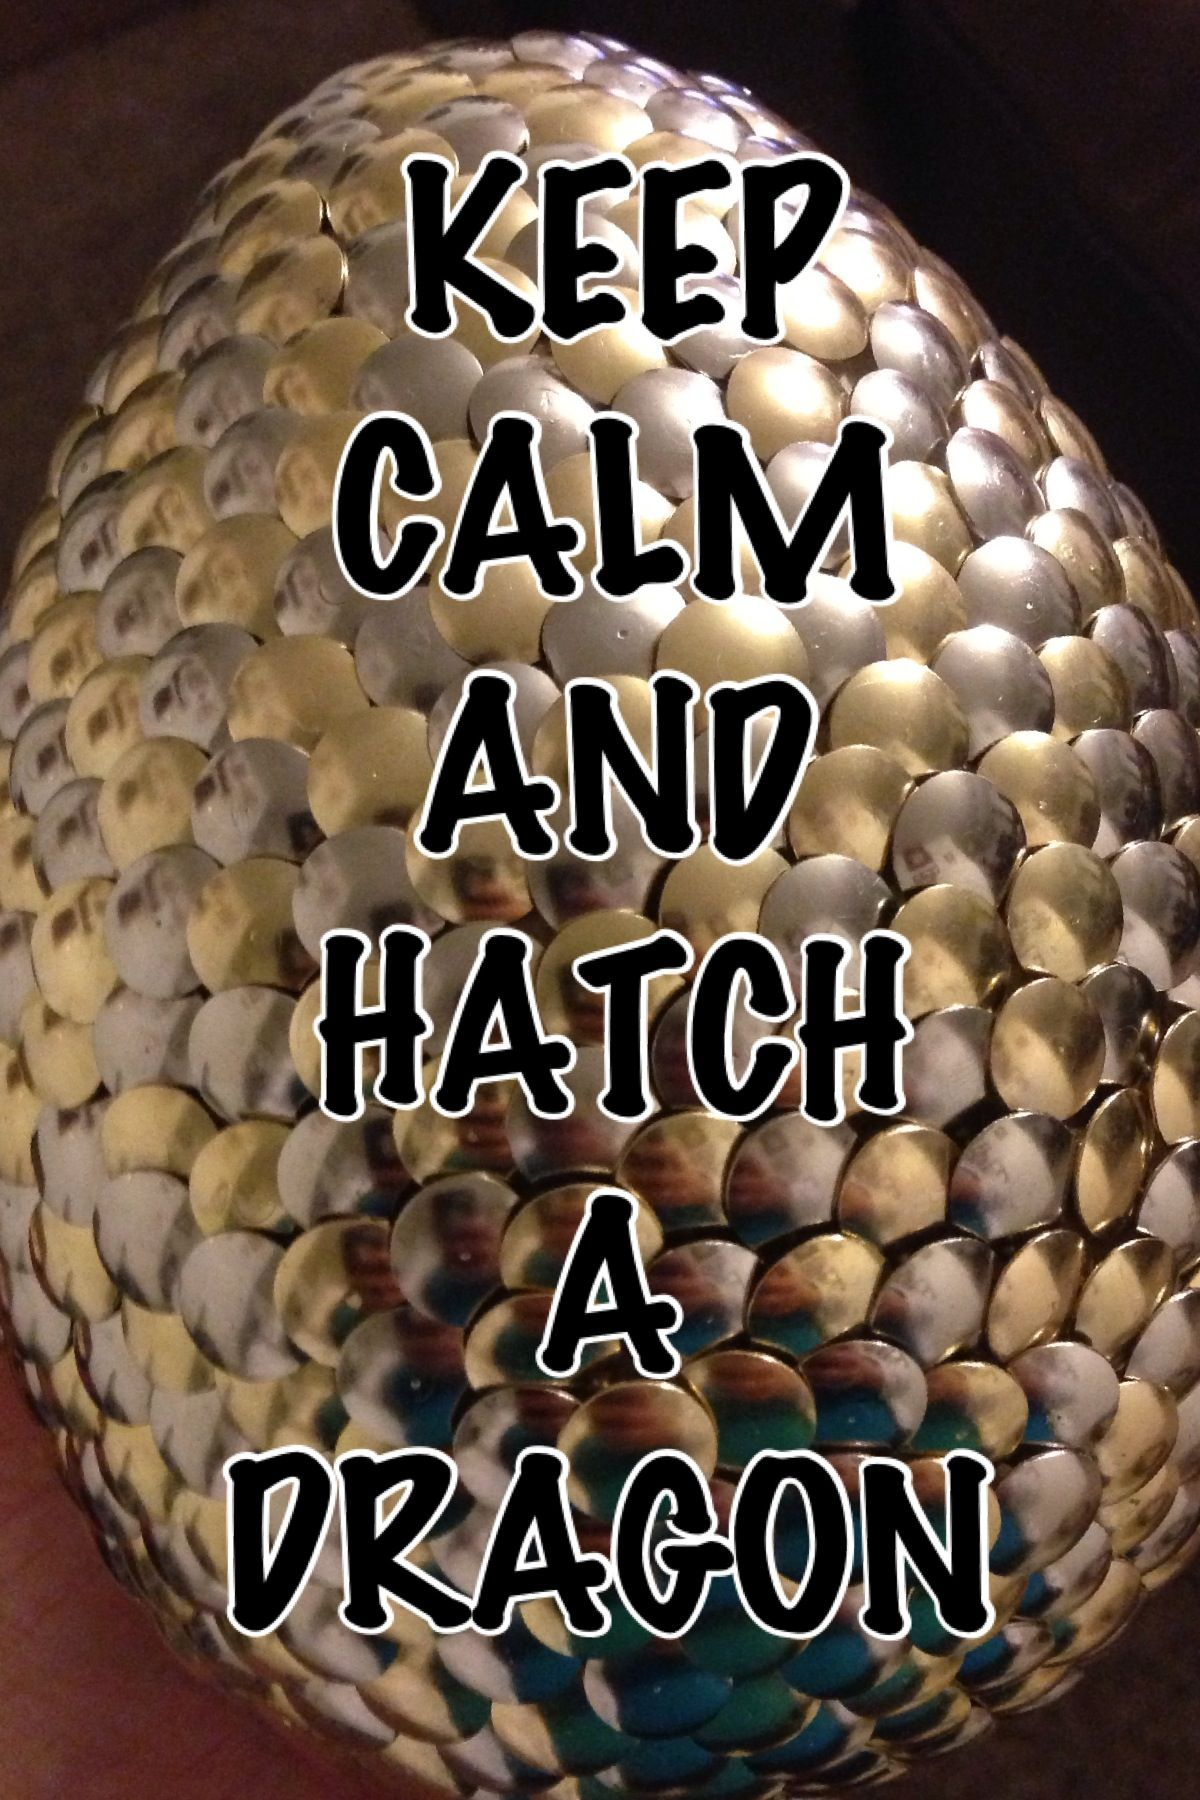 Keep Calm and Hatch a Dragon! Preferably Night Furies. Yes, I know it's Game of Thrones, but I like it. lol XD